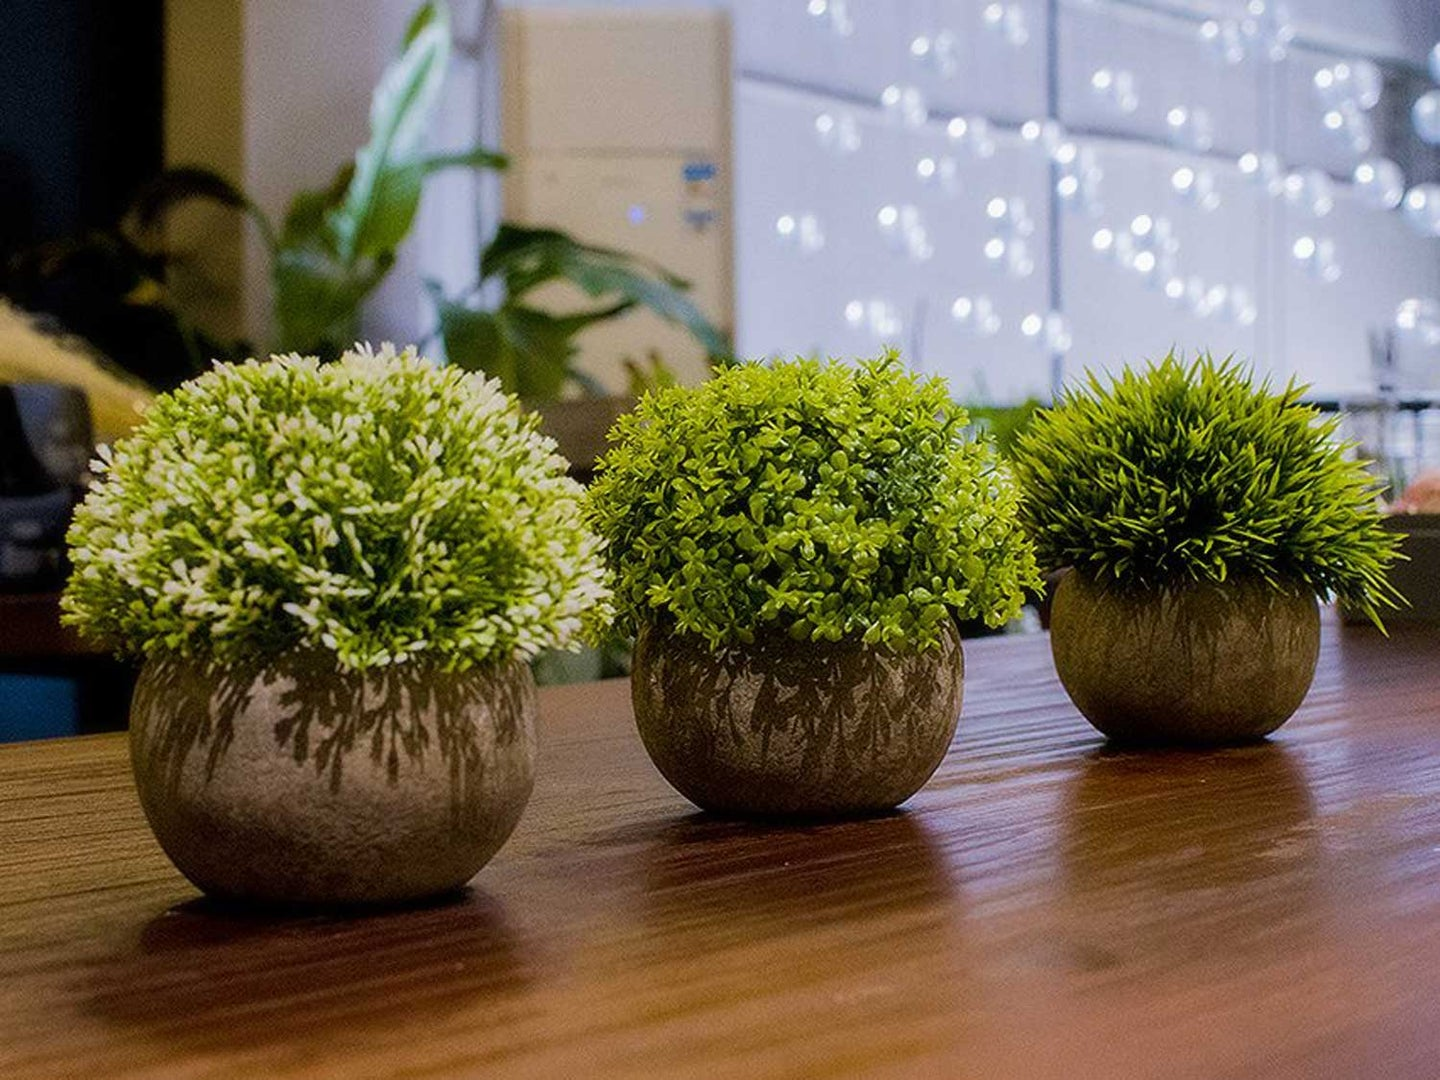 Fake plants sitting on counter in home.